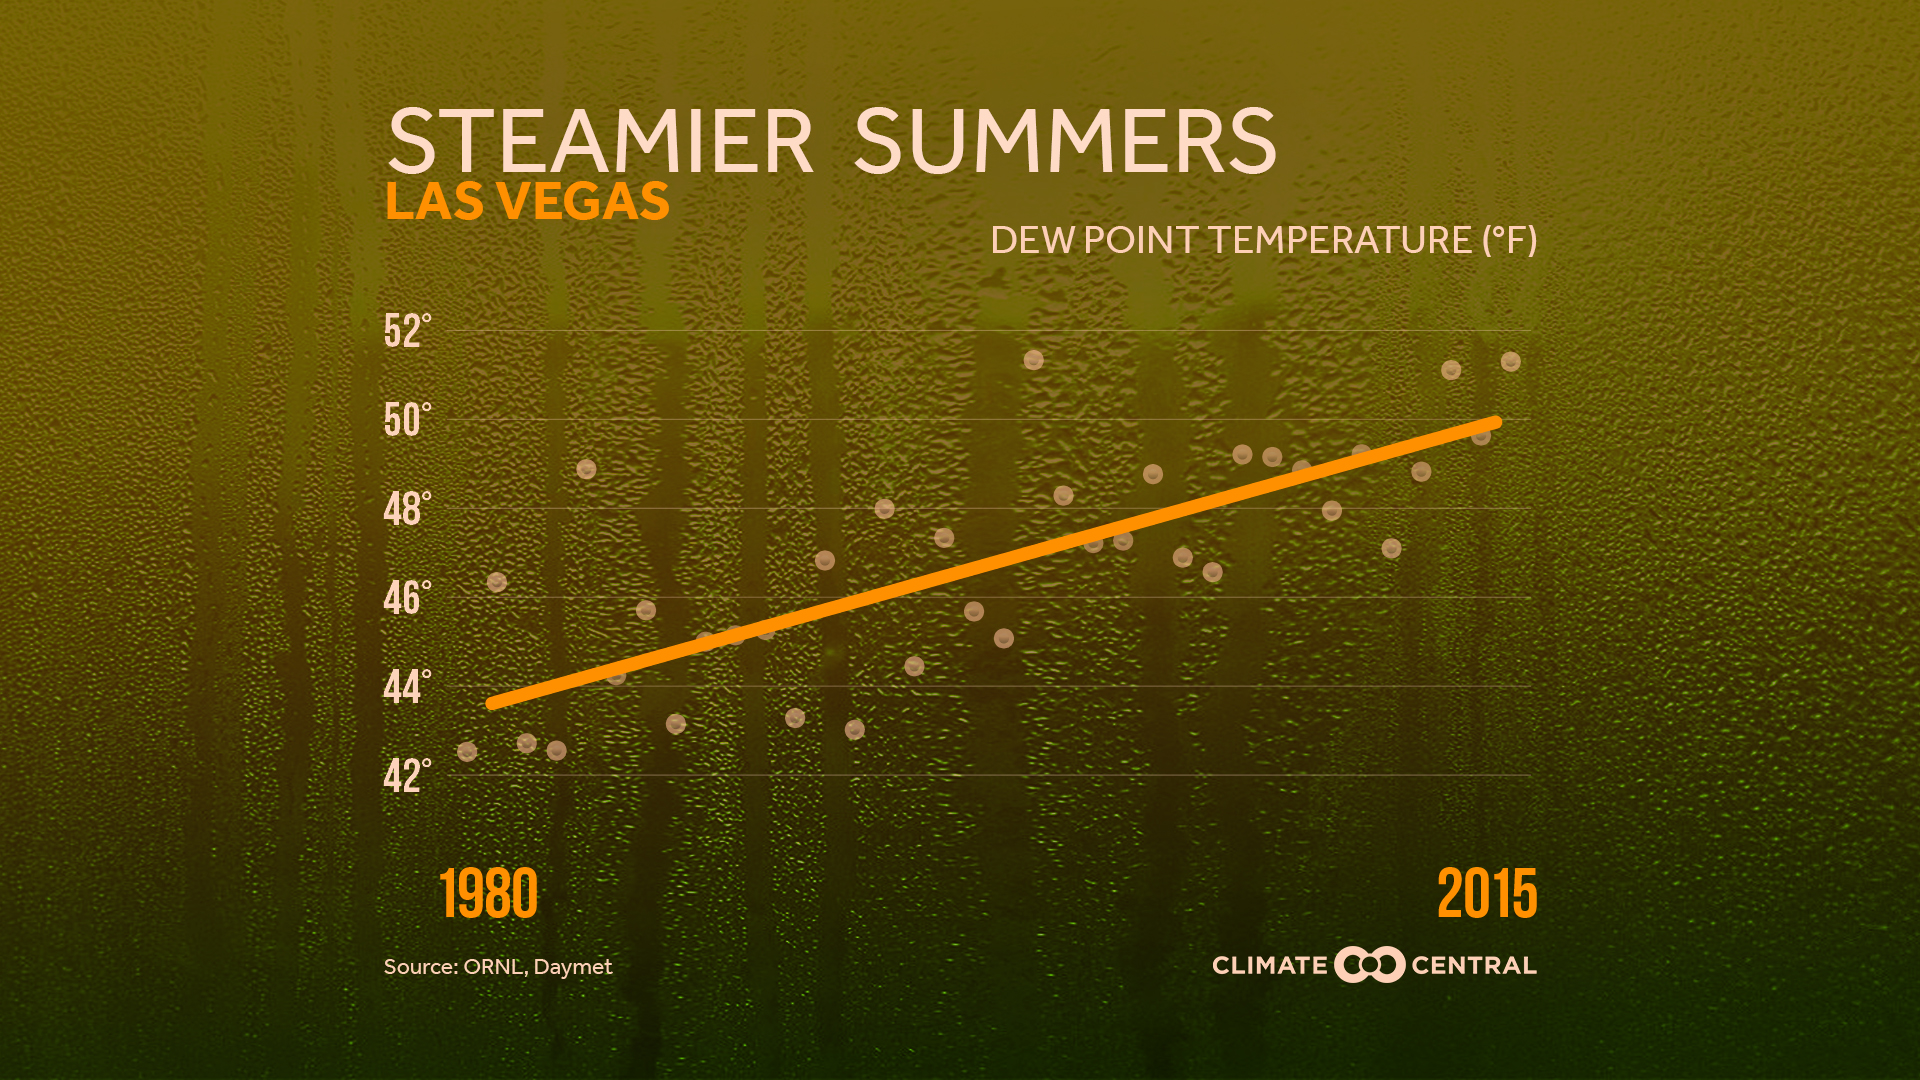 Summers Getting Muggier As Dewpoint Temp Rises Climate Central